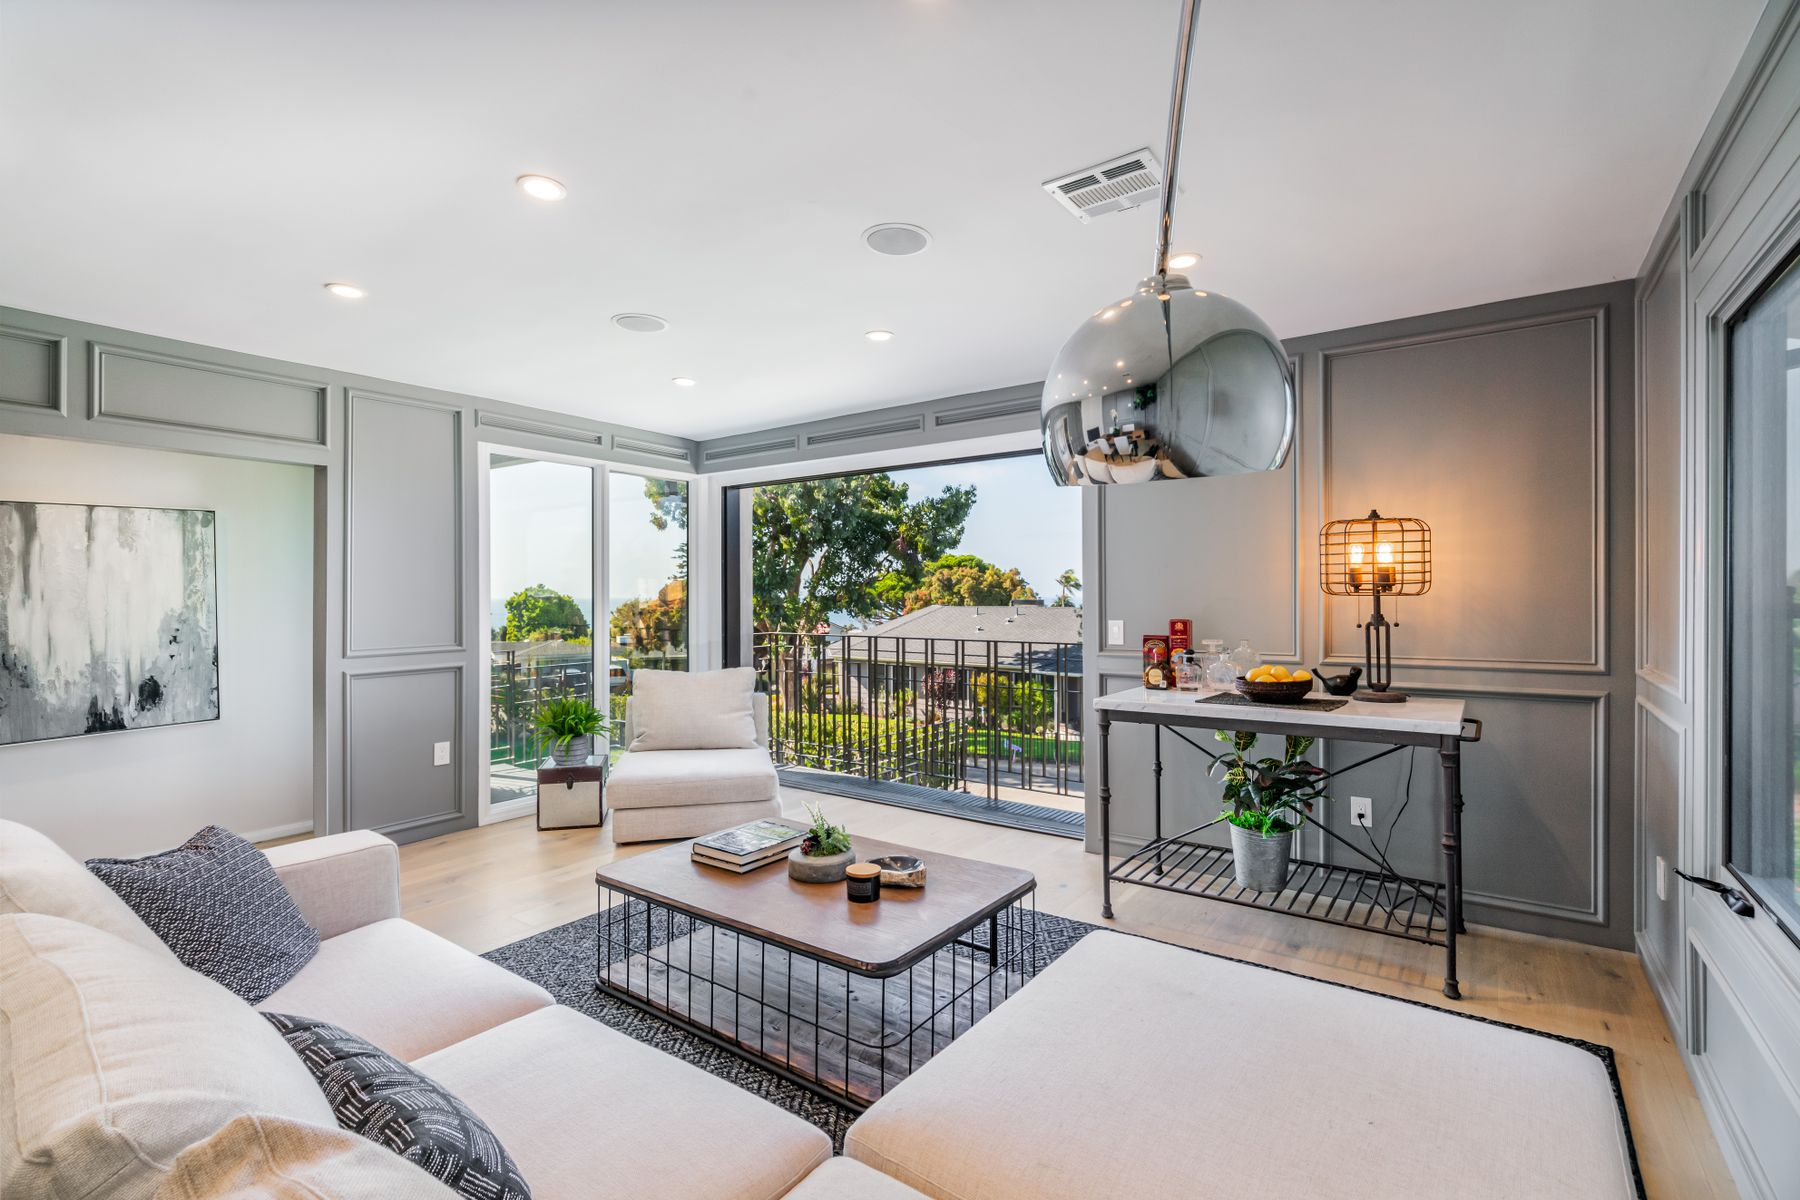 Single Family Homes for Sale at A Refined Hollywood Riviera Showplace 620 Calle Miramar Redondo Beach, California 90277 United States